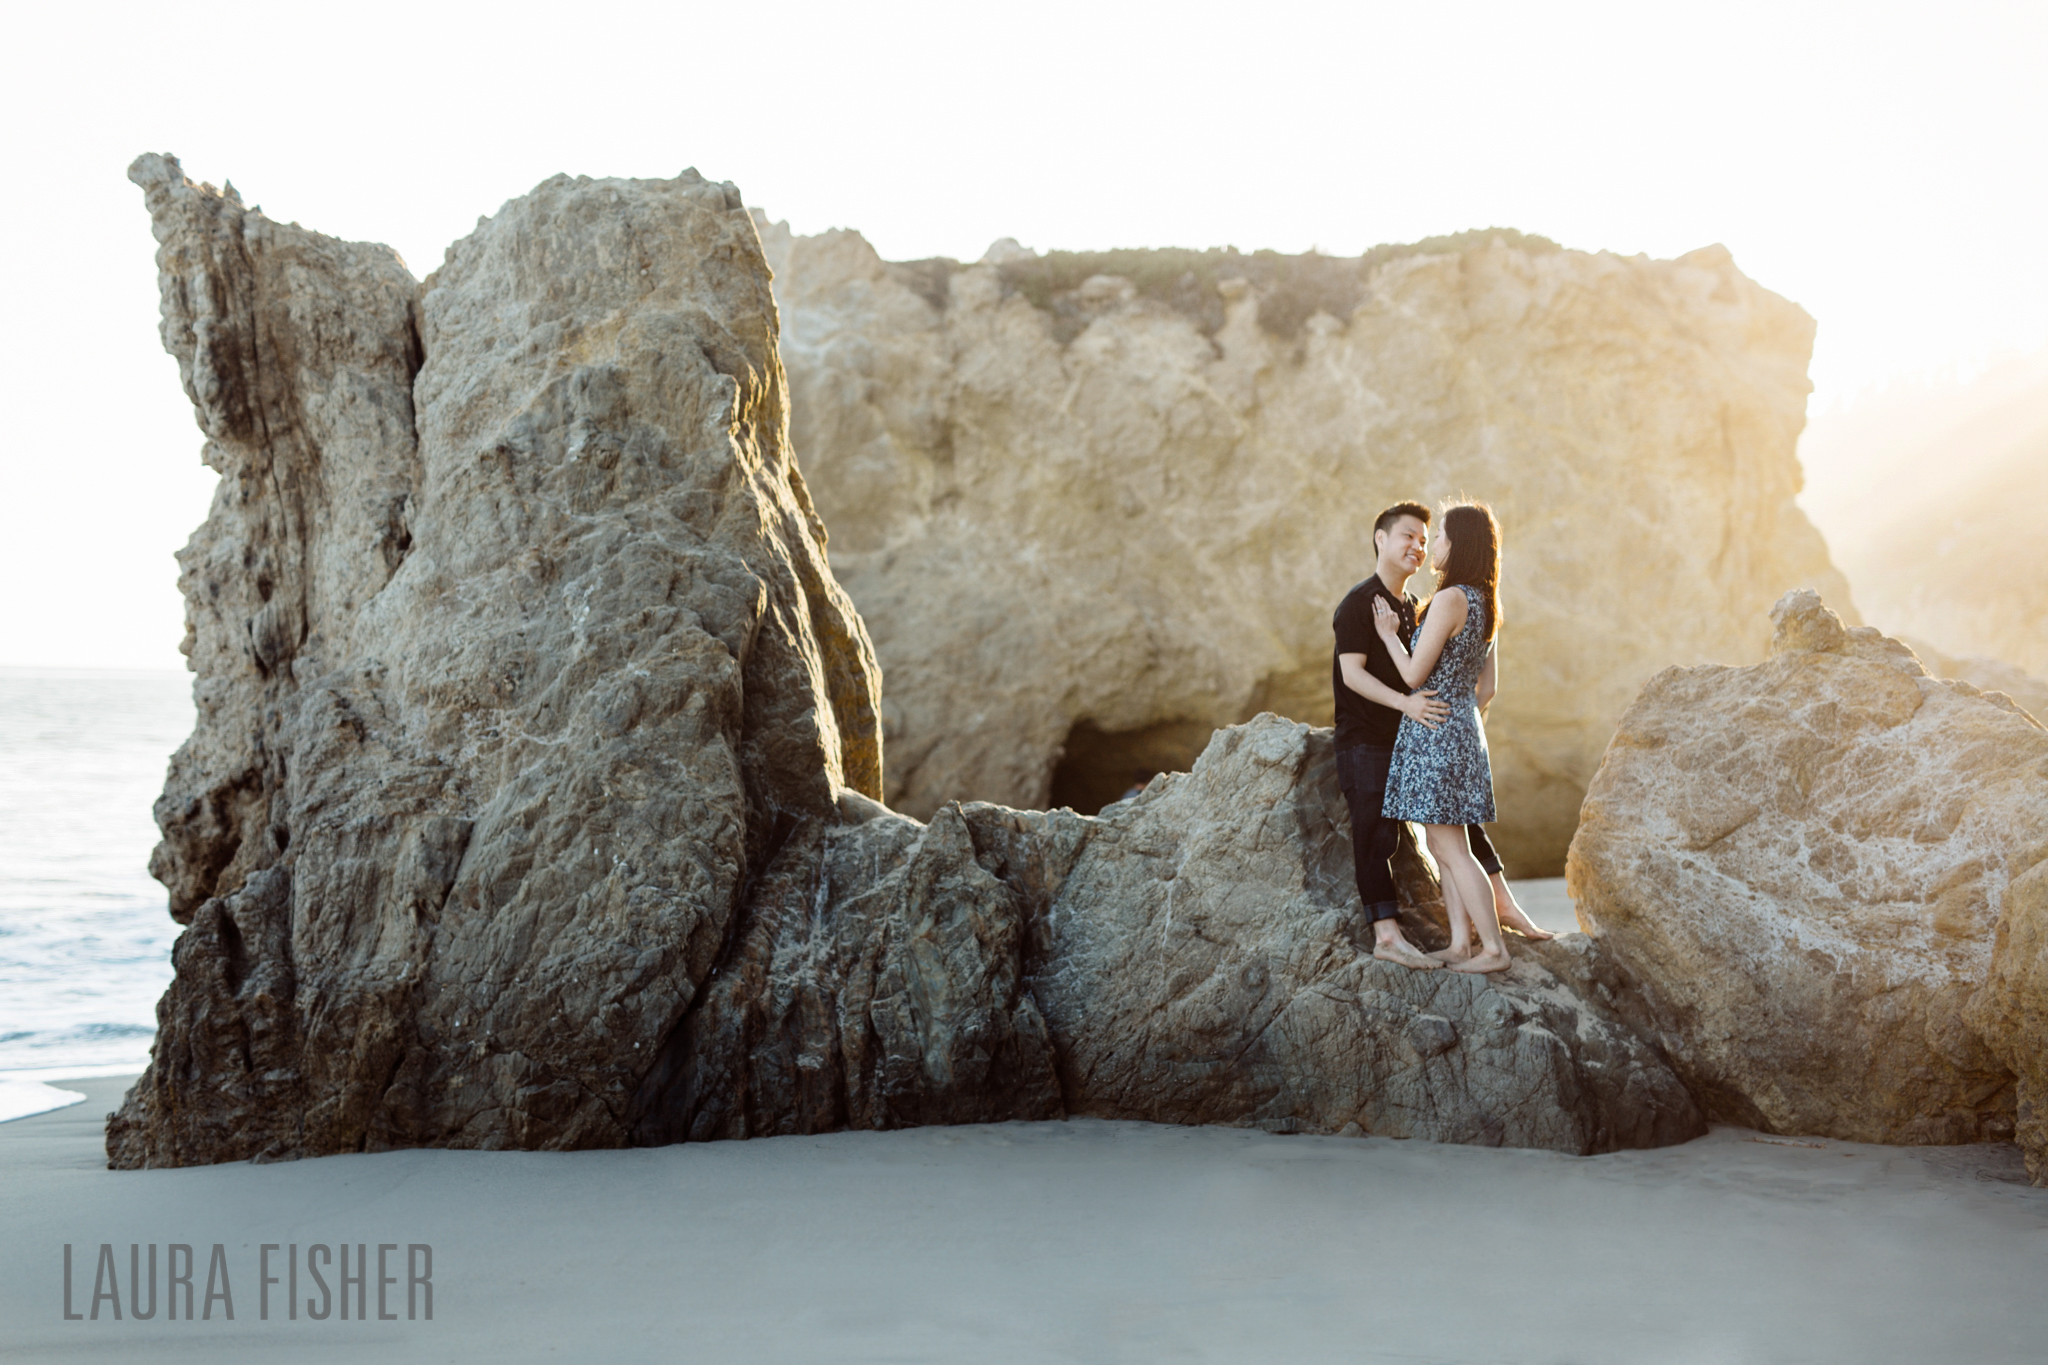 malibu-california-wedding-el-matador-beach-laura-fisher-photography-0053.jpg